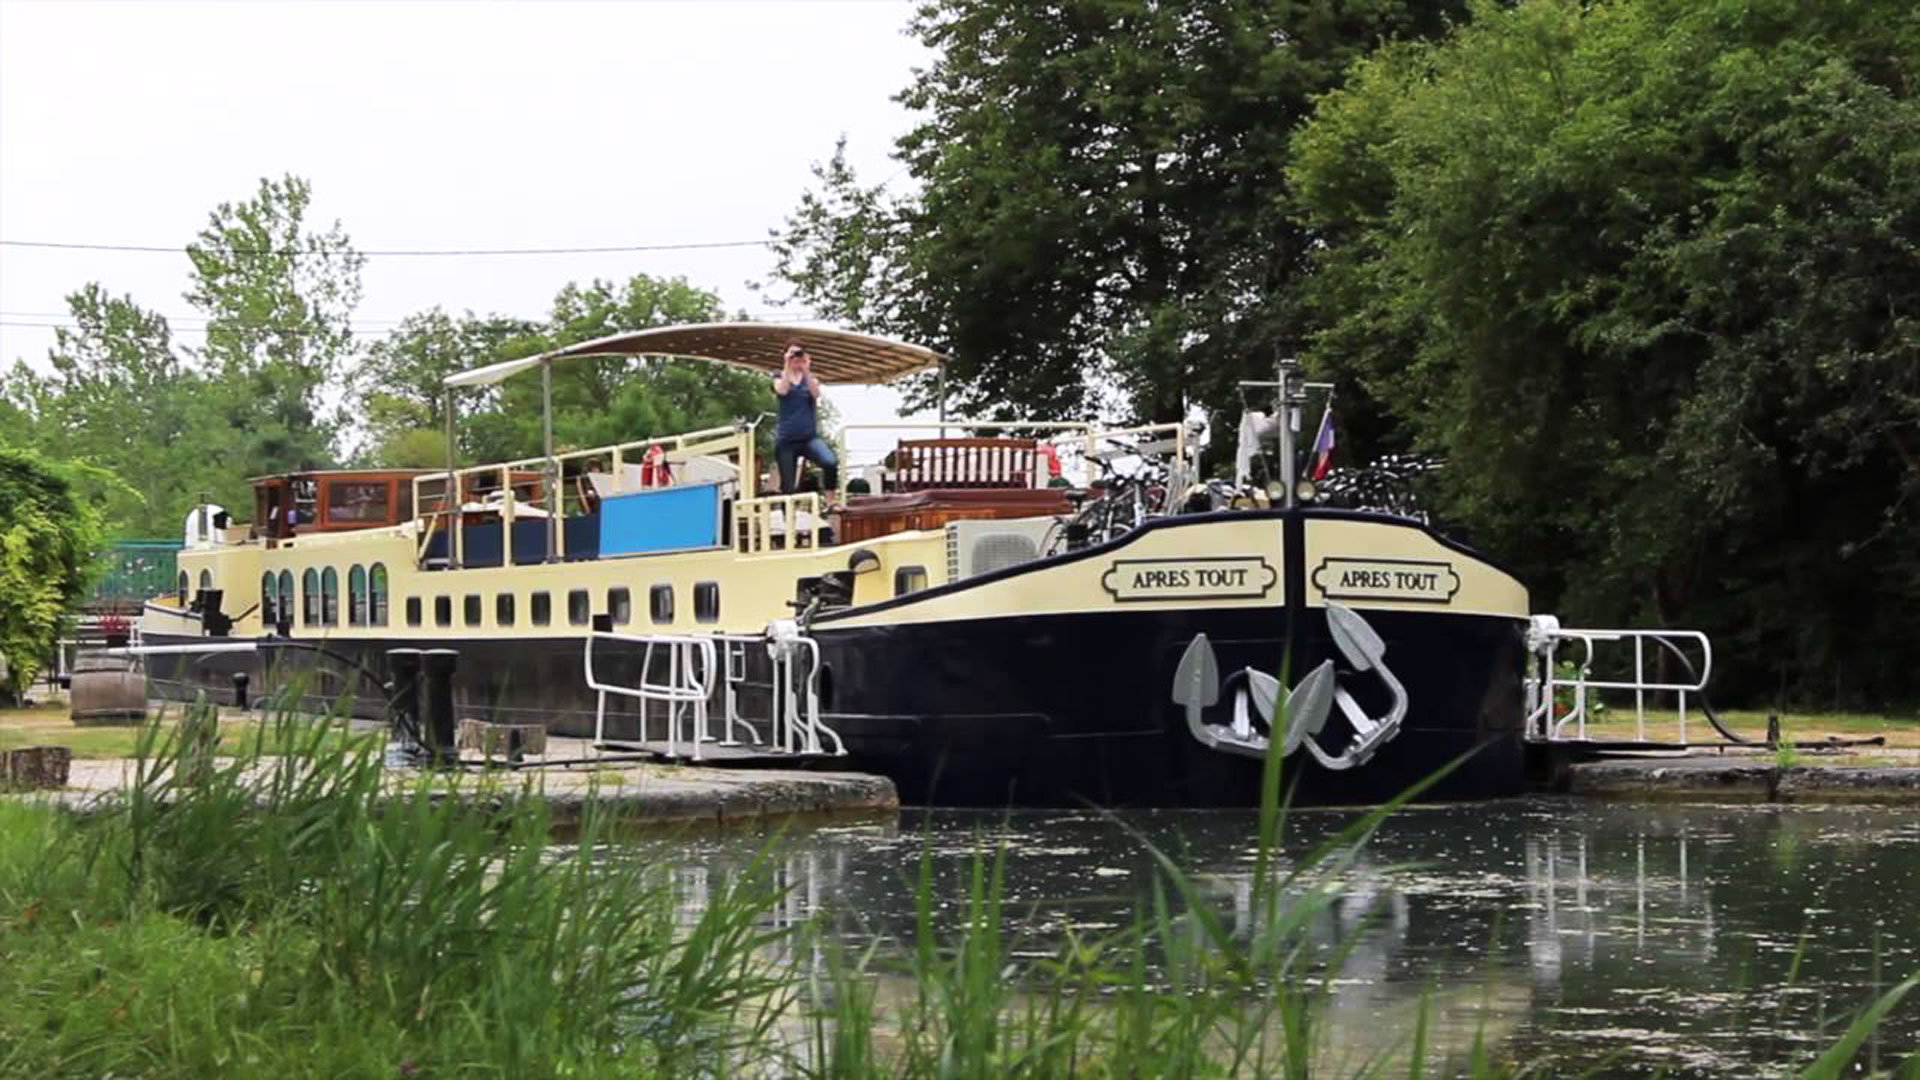 Hotel barge cruise France canals Burgundy Apres Tout